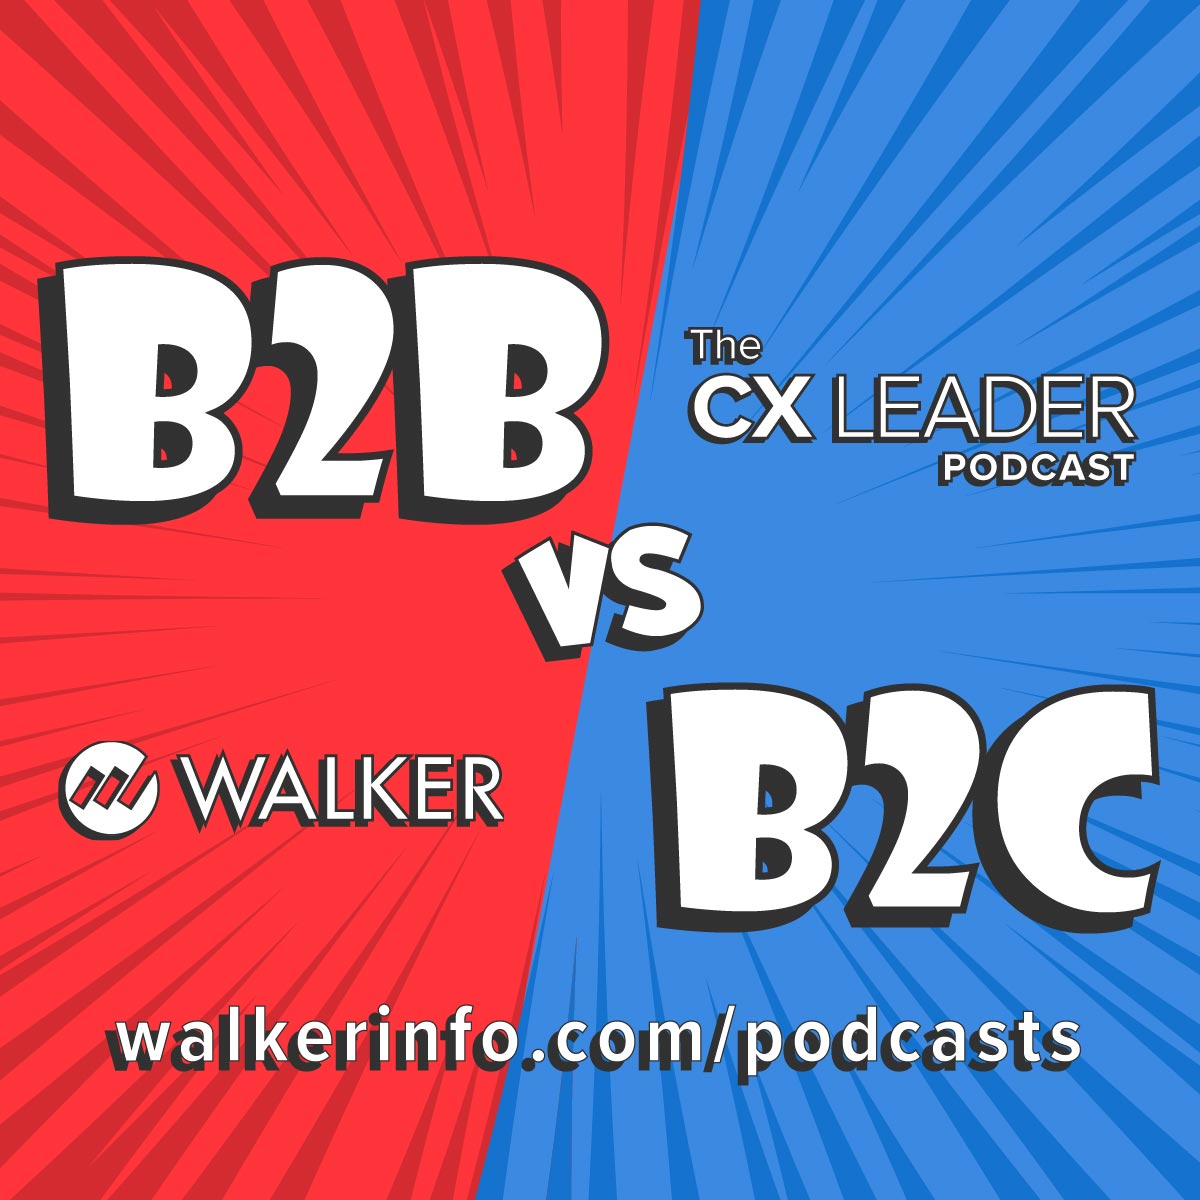 Is B2B CX behind B2C?